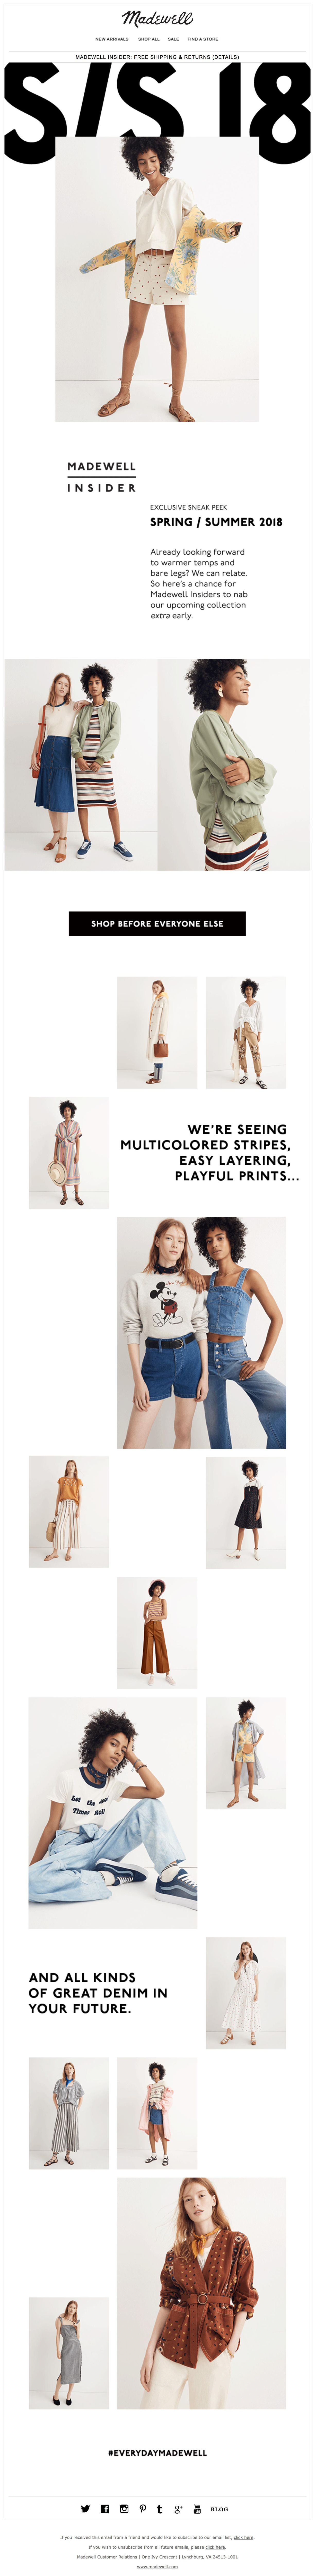 Madewell: Insiders Only Spring 2018 Email